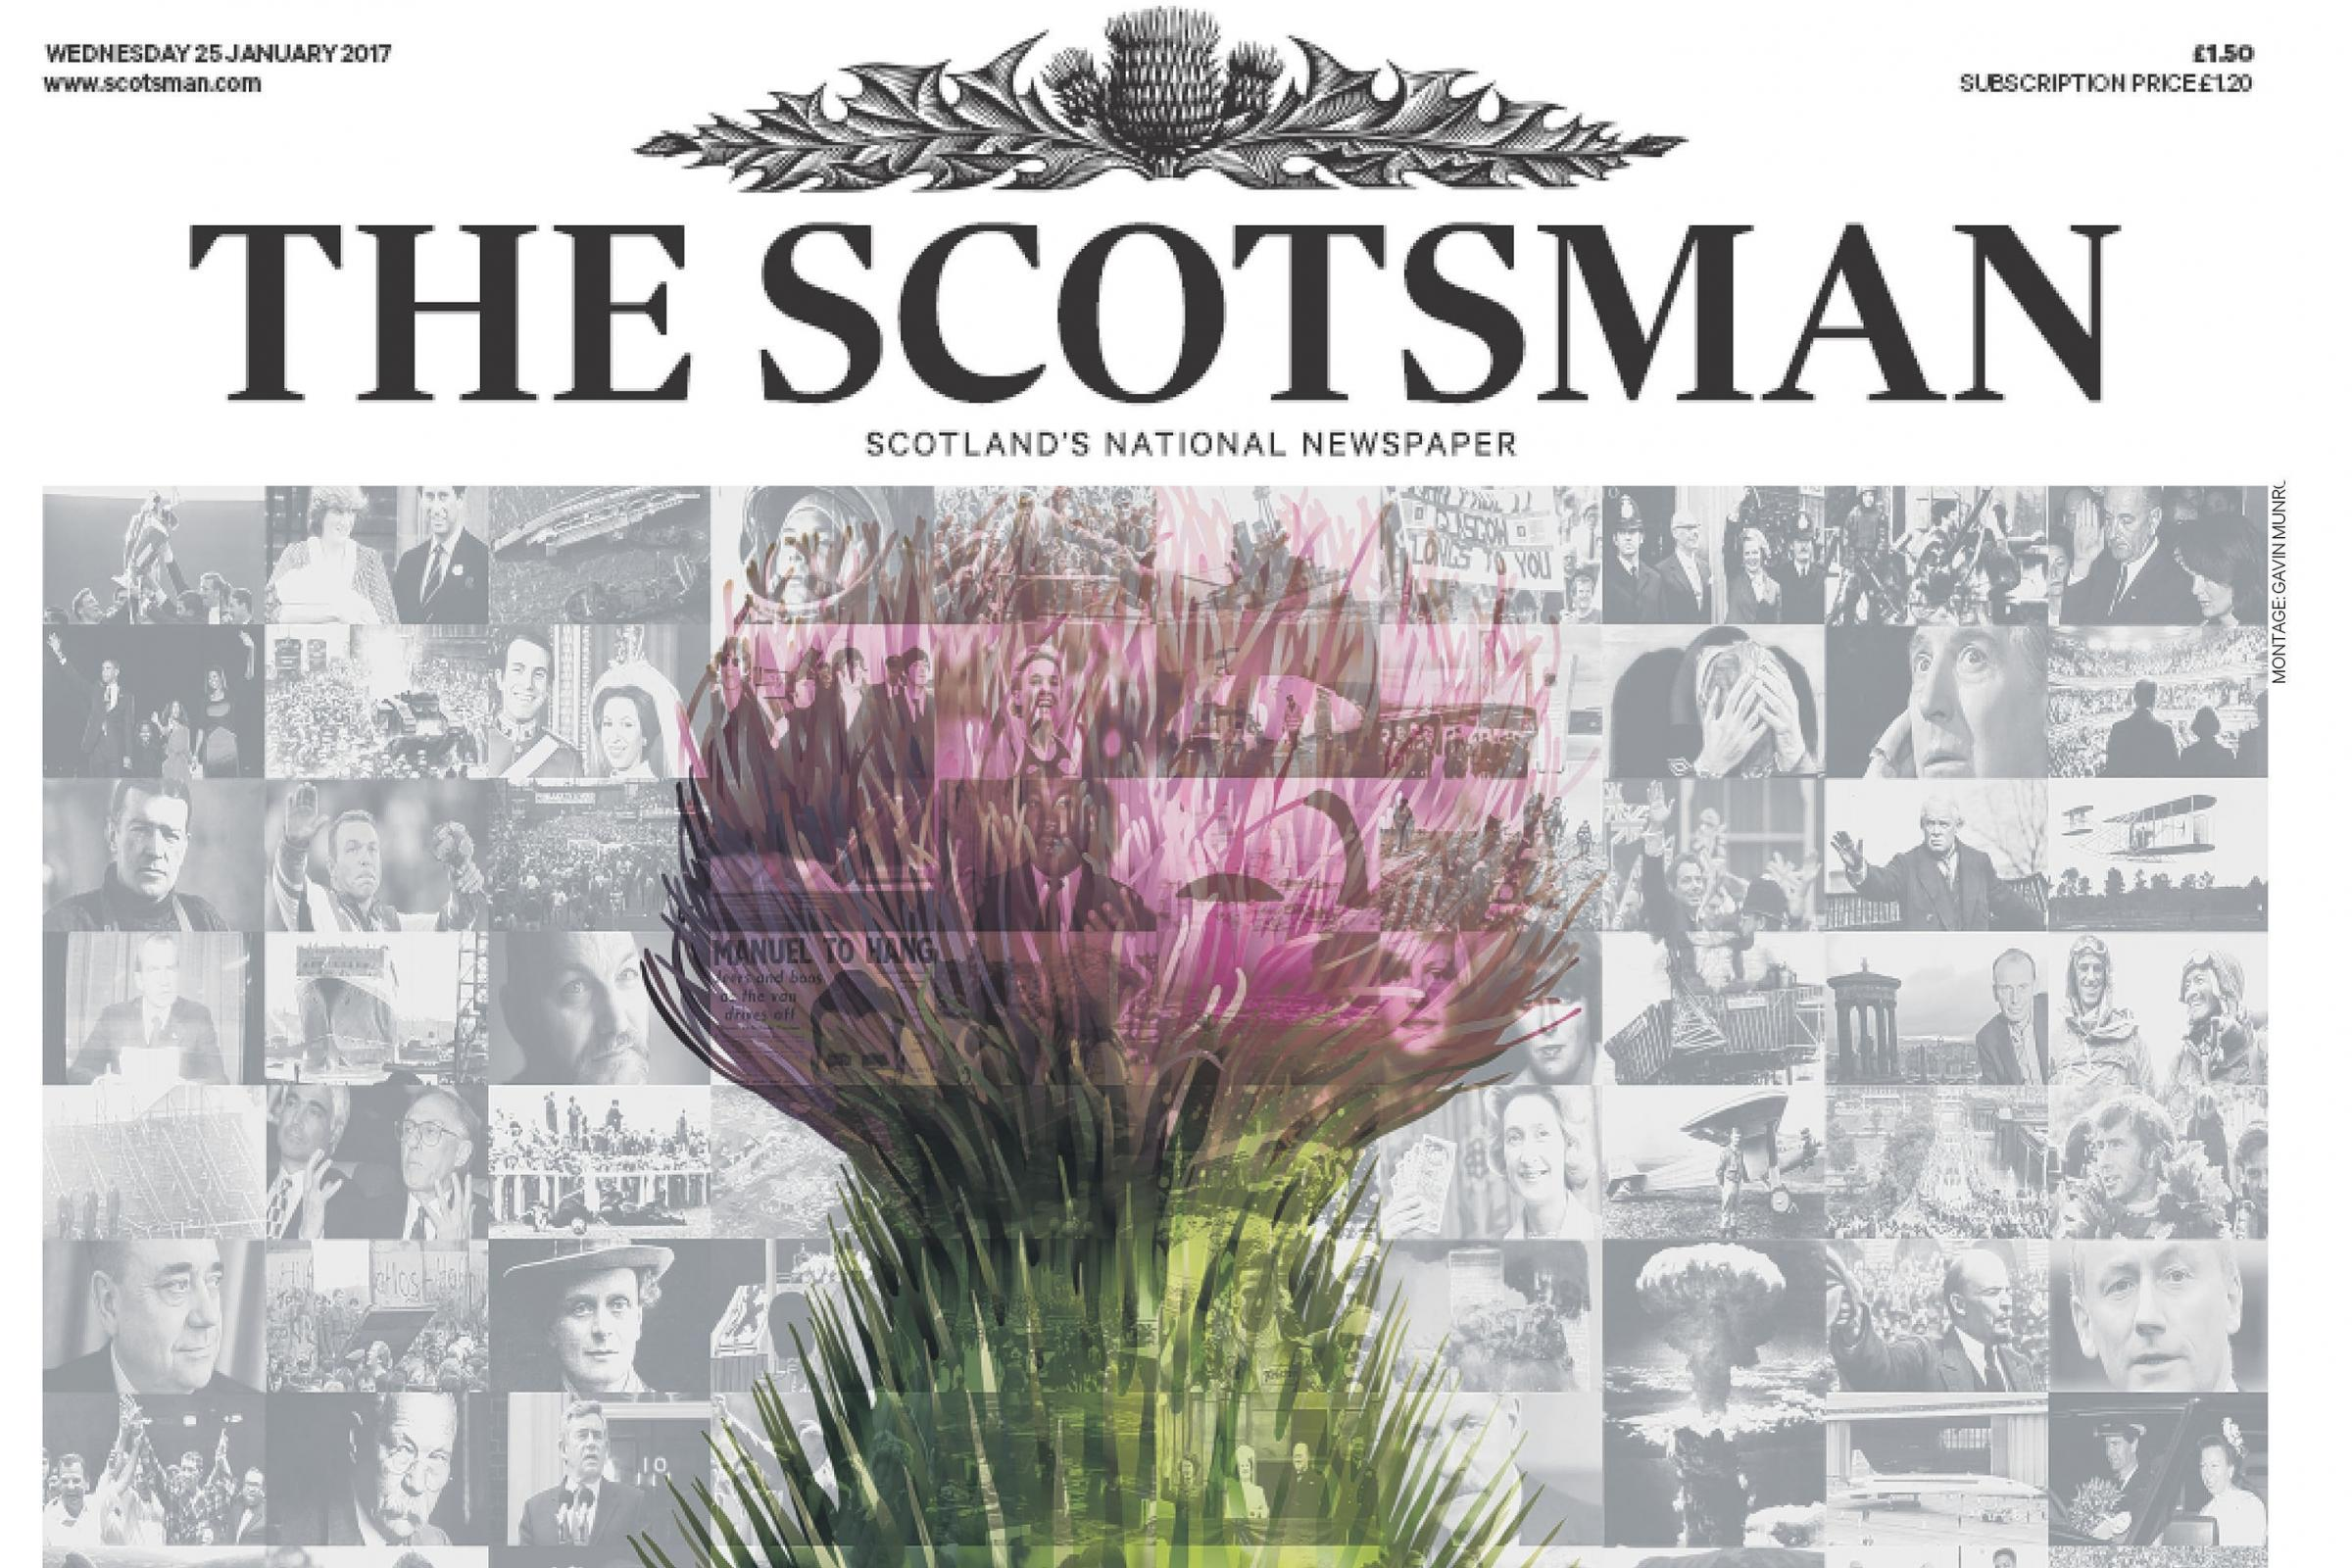 The Scotsman newspaper owner puts itself up for sale after months of speculation